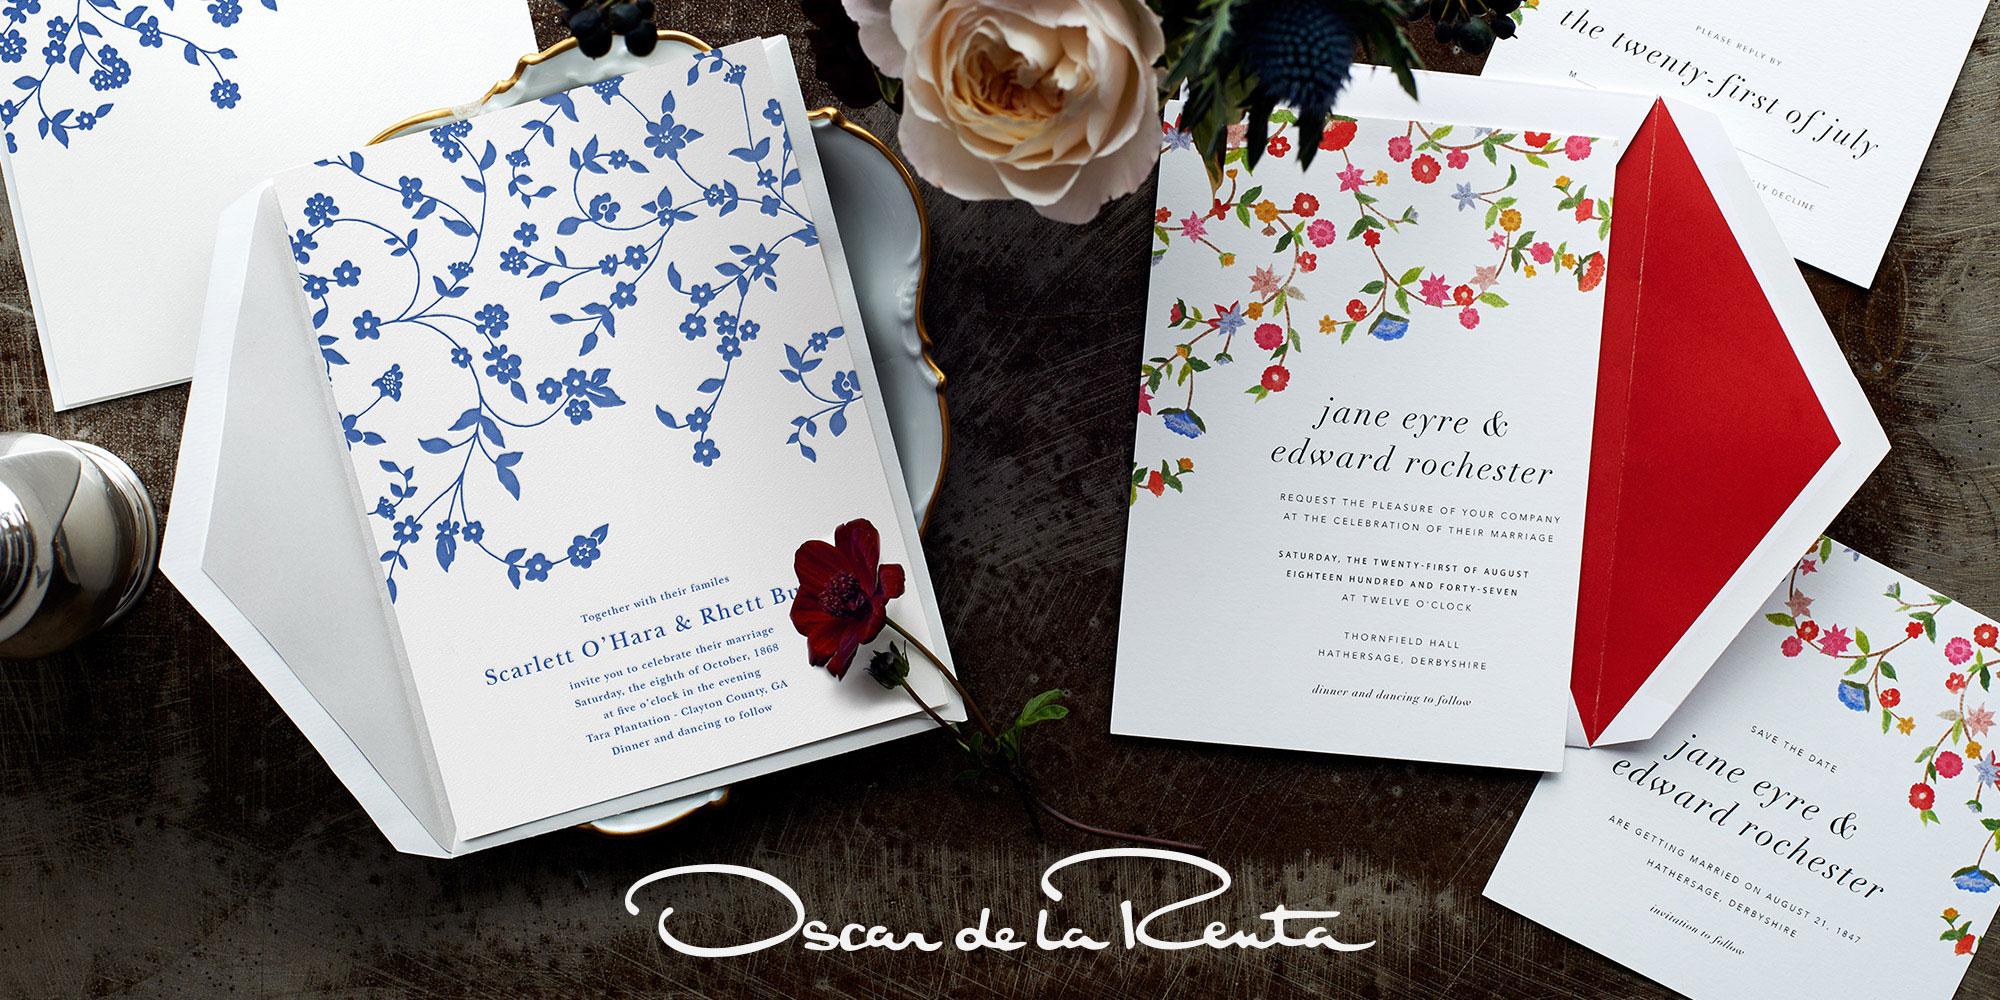 Oscar de la Renta Wedding Collection